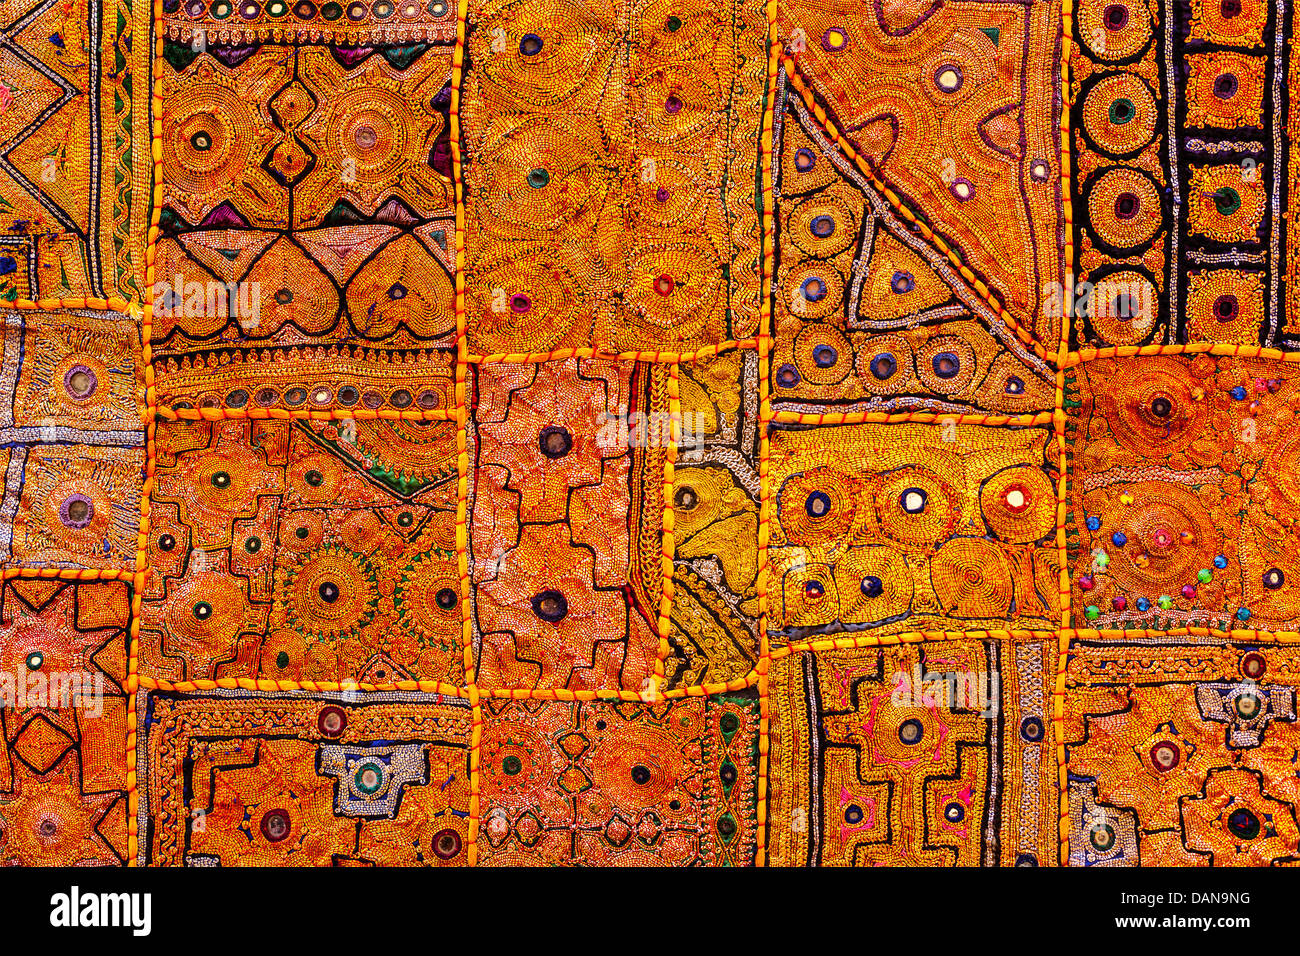 Colorful indian fabric textile texture background patchwork carpet quilt. India - Stock Image